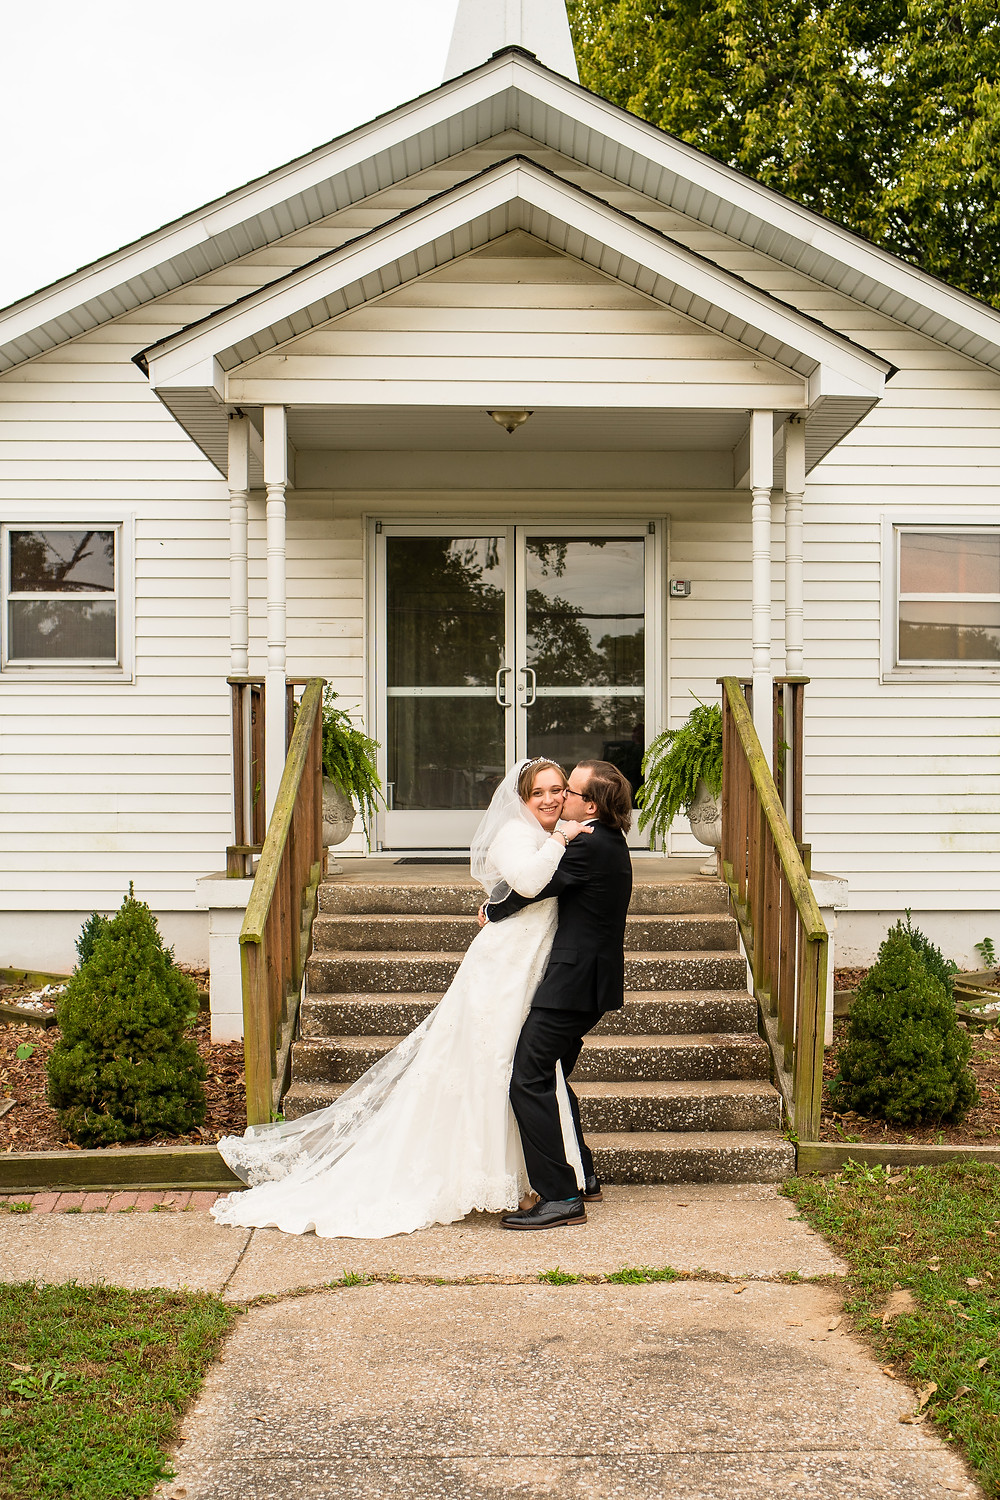 Groom picks up bride to kiss her